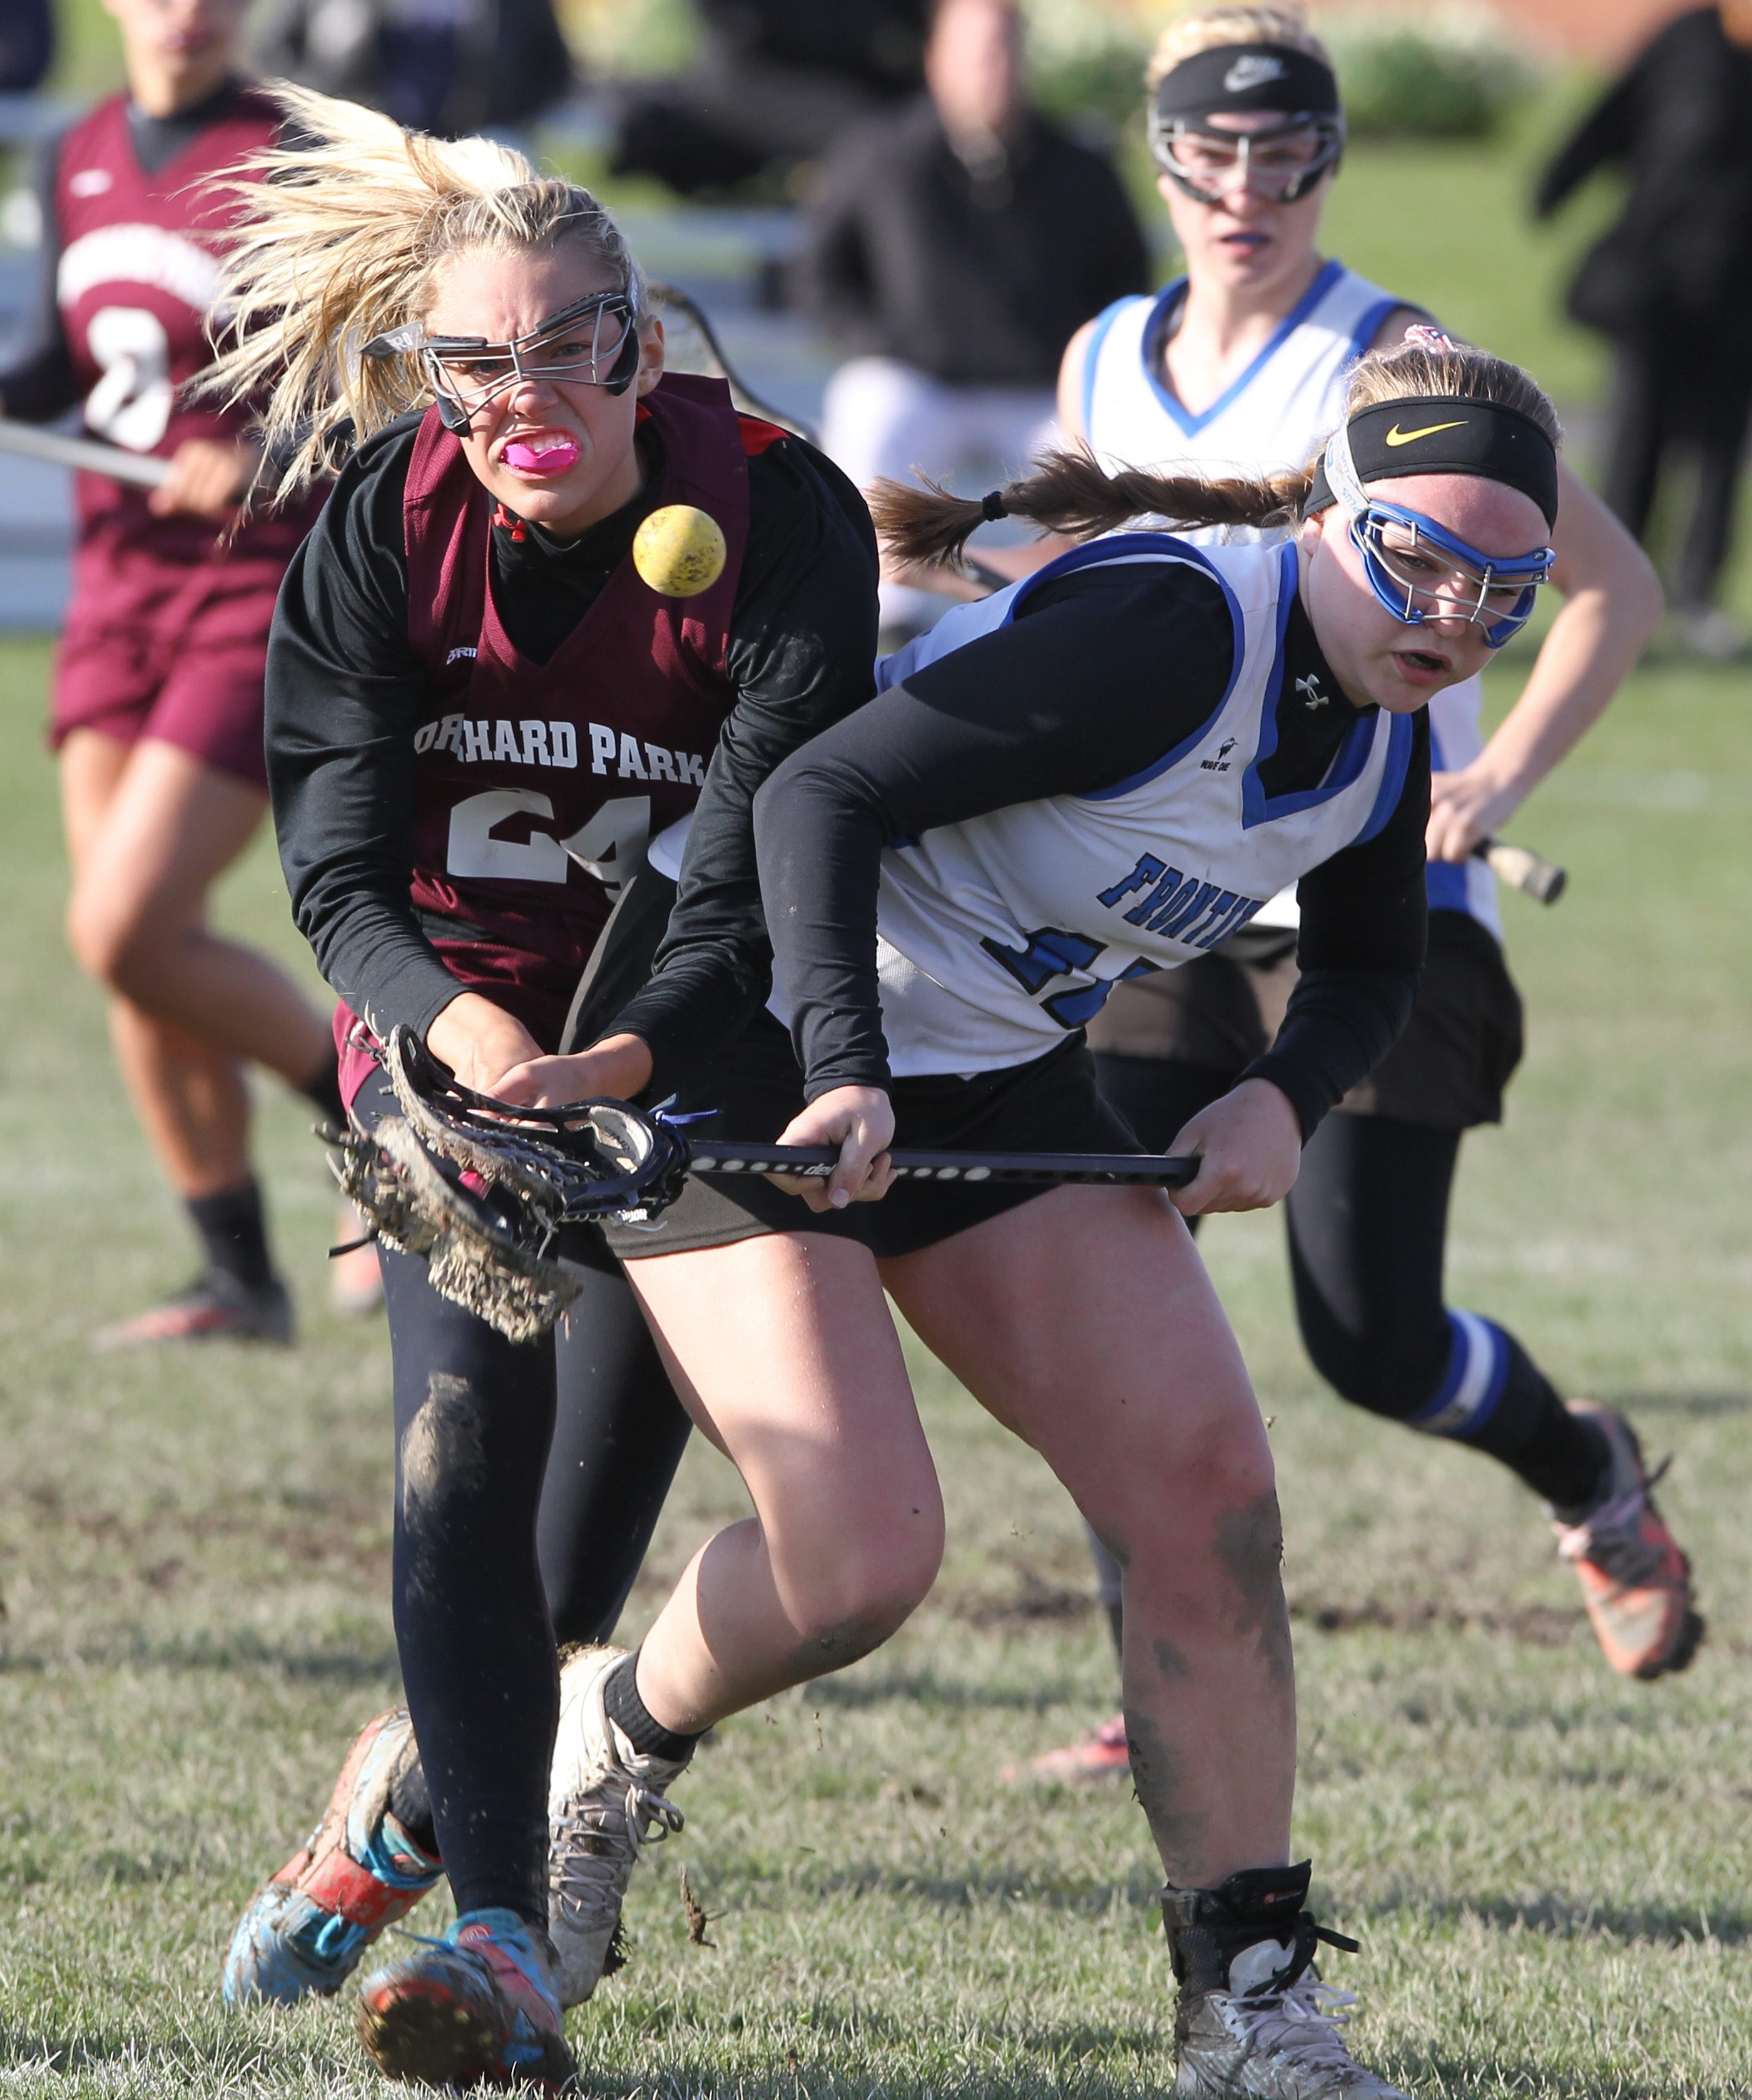 Jackie Dufresne, right, beats Orchard Park's Sydney Potenza to the ball in their game on Tuesday at Frontier.